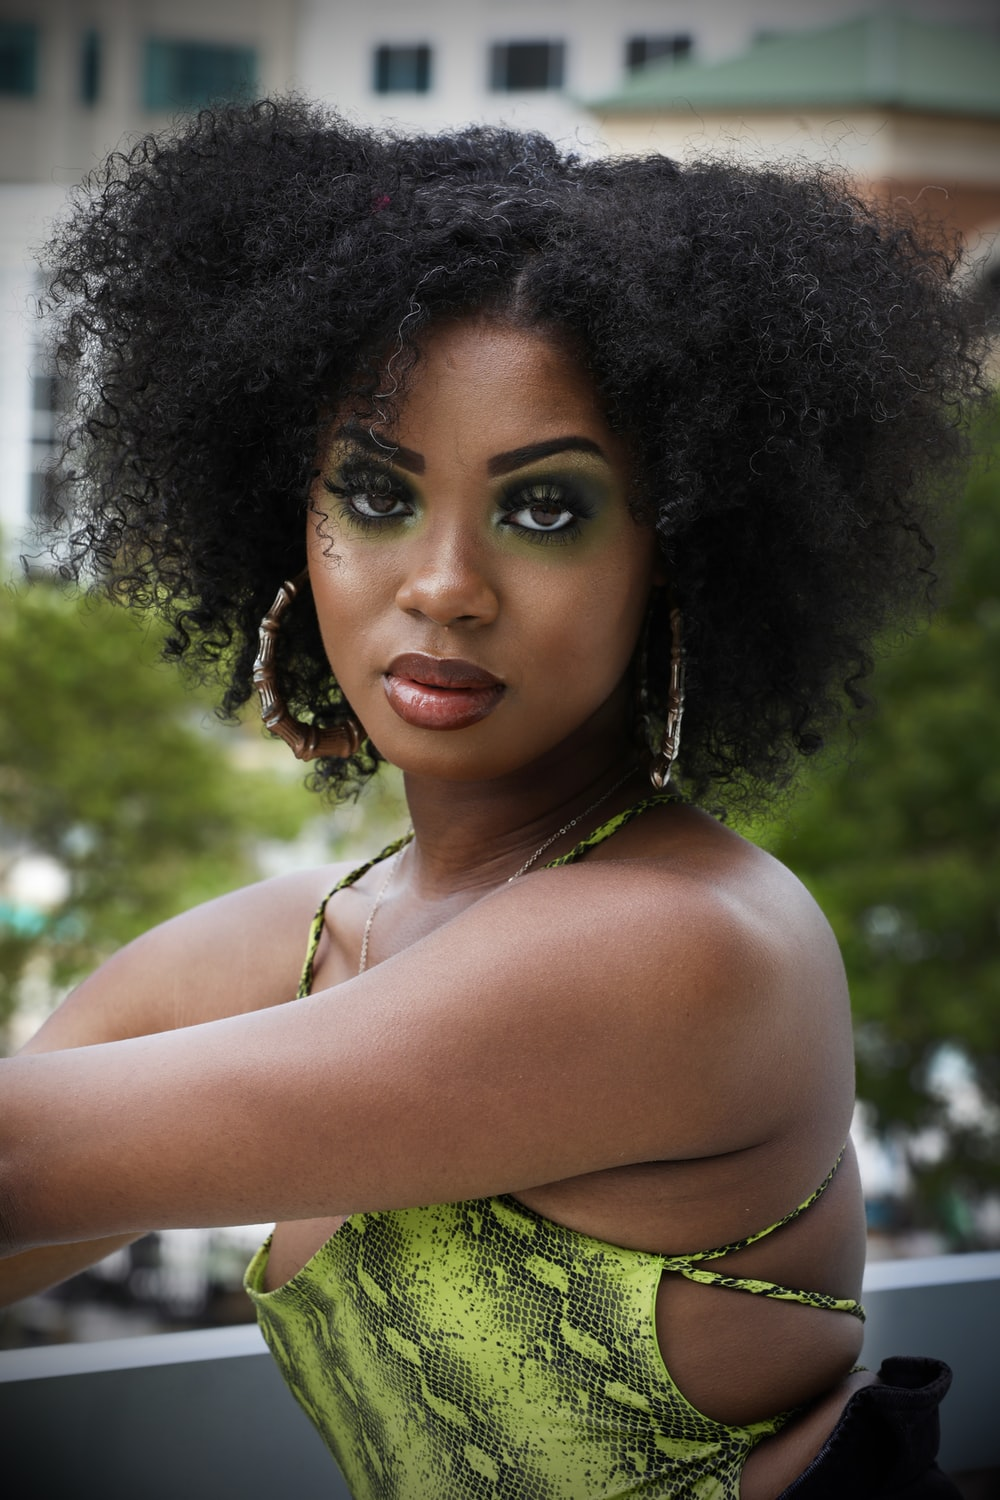 woman in white tank top with black curly hair